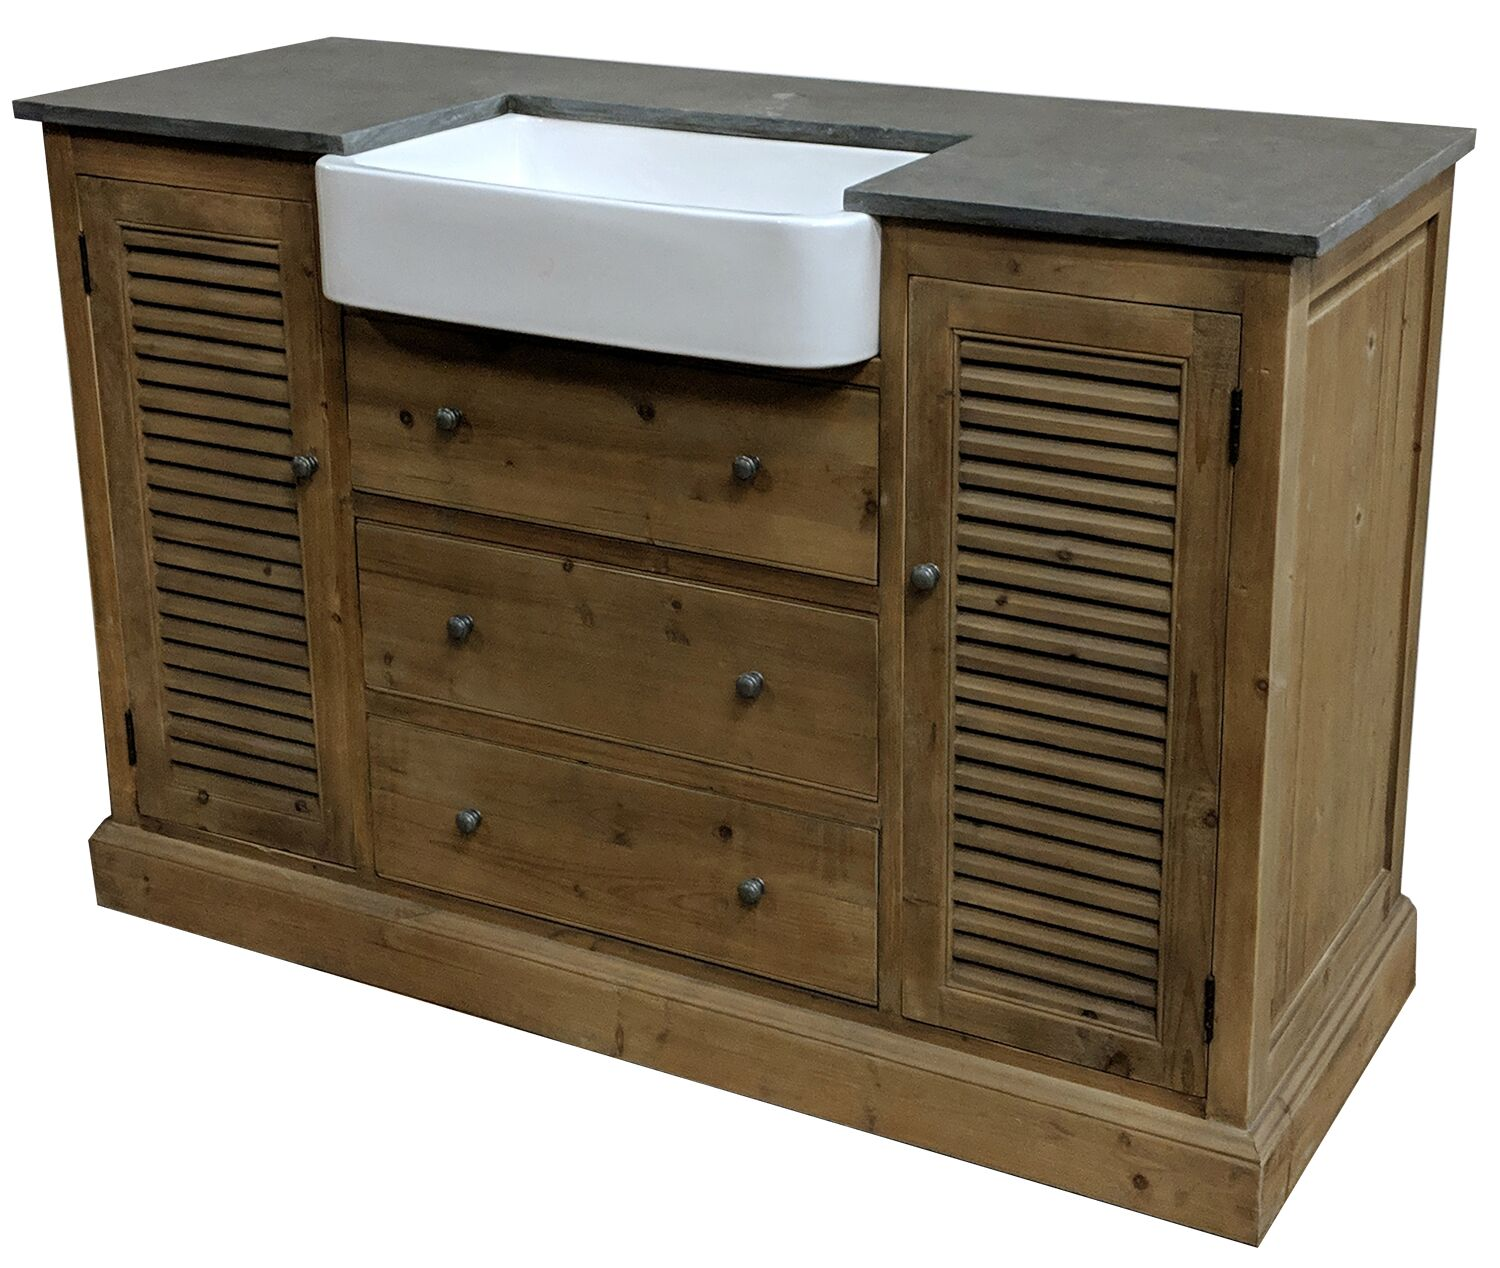 "54"" Handcrafted Reclaimed Pine Solid Wood Single Belgium Sink Bath Vanity"